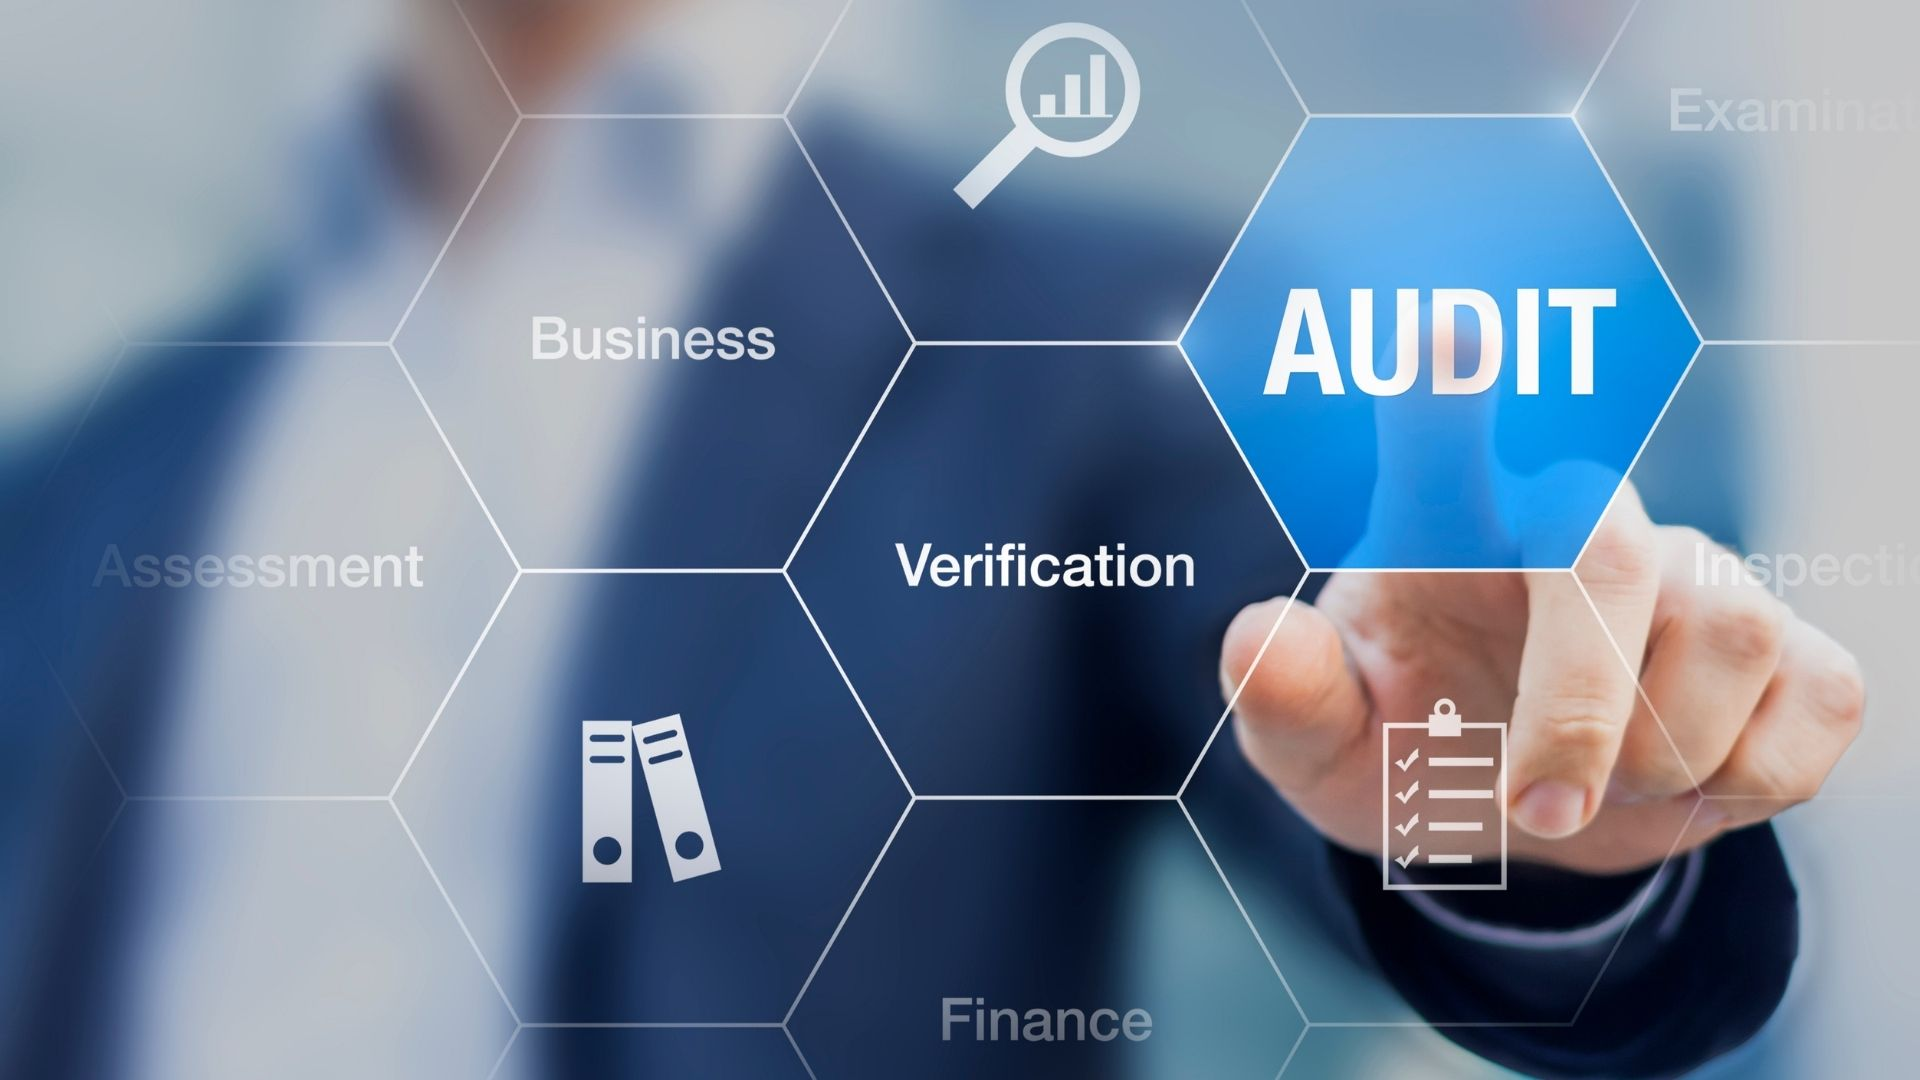 Embracing change and redefining audit